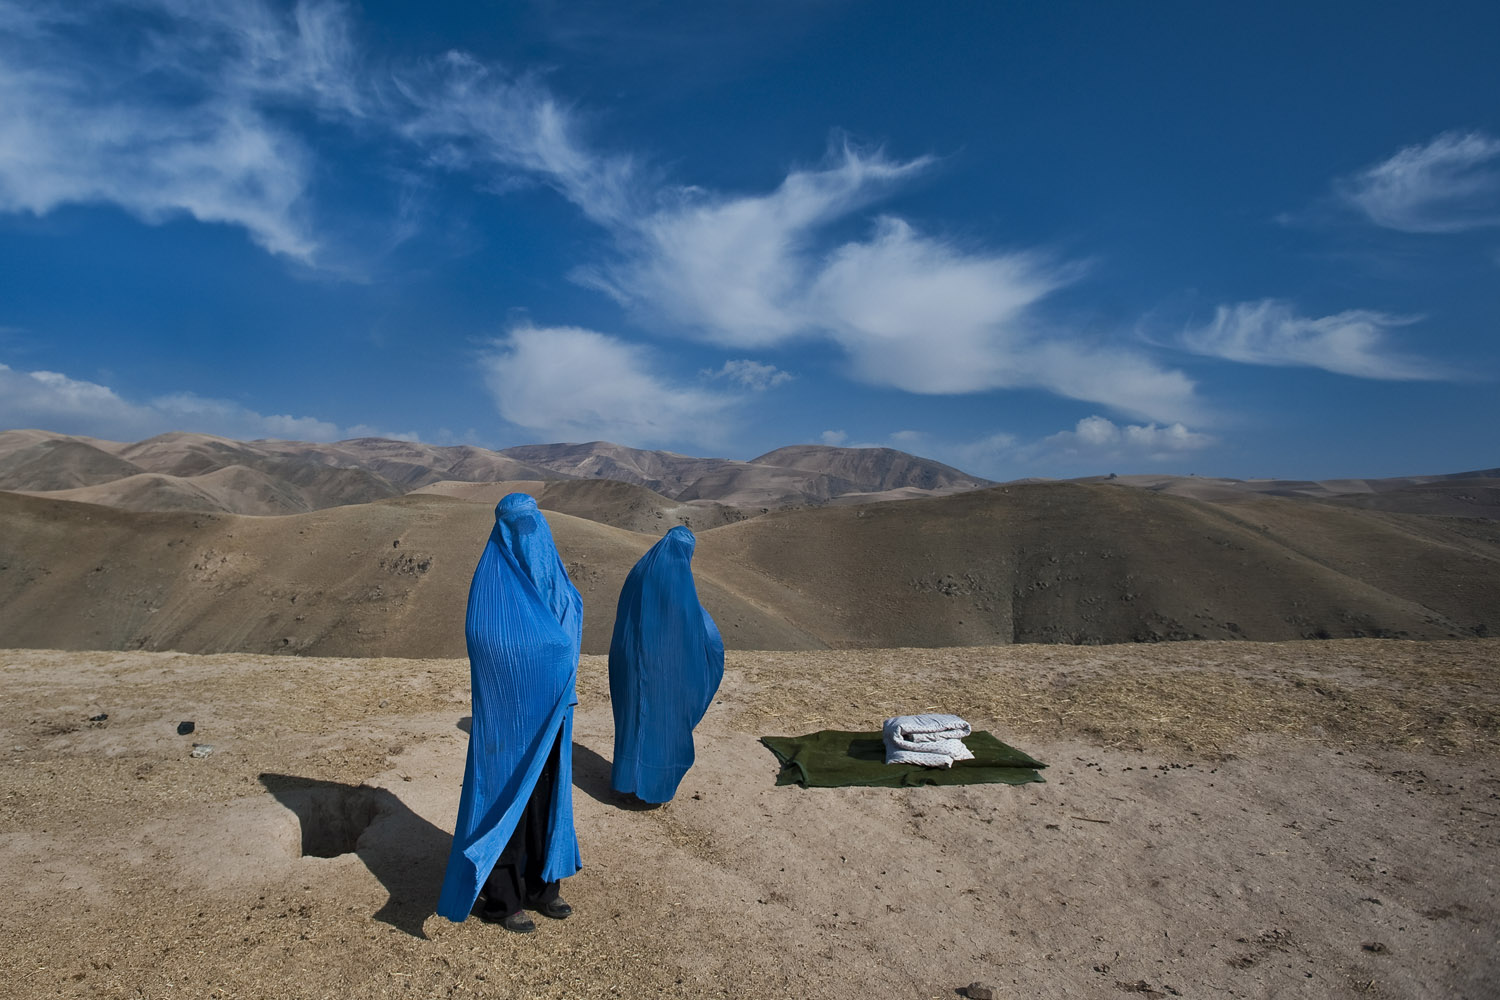 Noor Nisa, 20, pregnant, and her mother, Nazer Begam, 40, who live in Weha village, a four hour drive by car to the clinic in Faizabad, wait along the side of the road to be transported to the hospital, after their car broke down, in Badakhshan province, Afghanistan. Nov. 14, 2009. Nisa's water had just broken. Her husband, Shir Mohammad, who had lost two wives and whose first wife had died during childbirth, was determined to get Nisa to the hospital but his borrowed car broke down, so he went to find another vehicle. Nisa, her mother and her husband were eventually taken by the photographer and her interpreter, who happened to be driving by, to the hospital where Nisa delivered a baby girl.